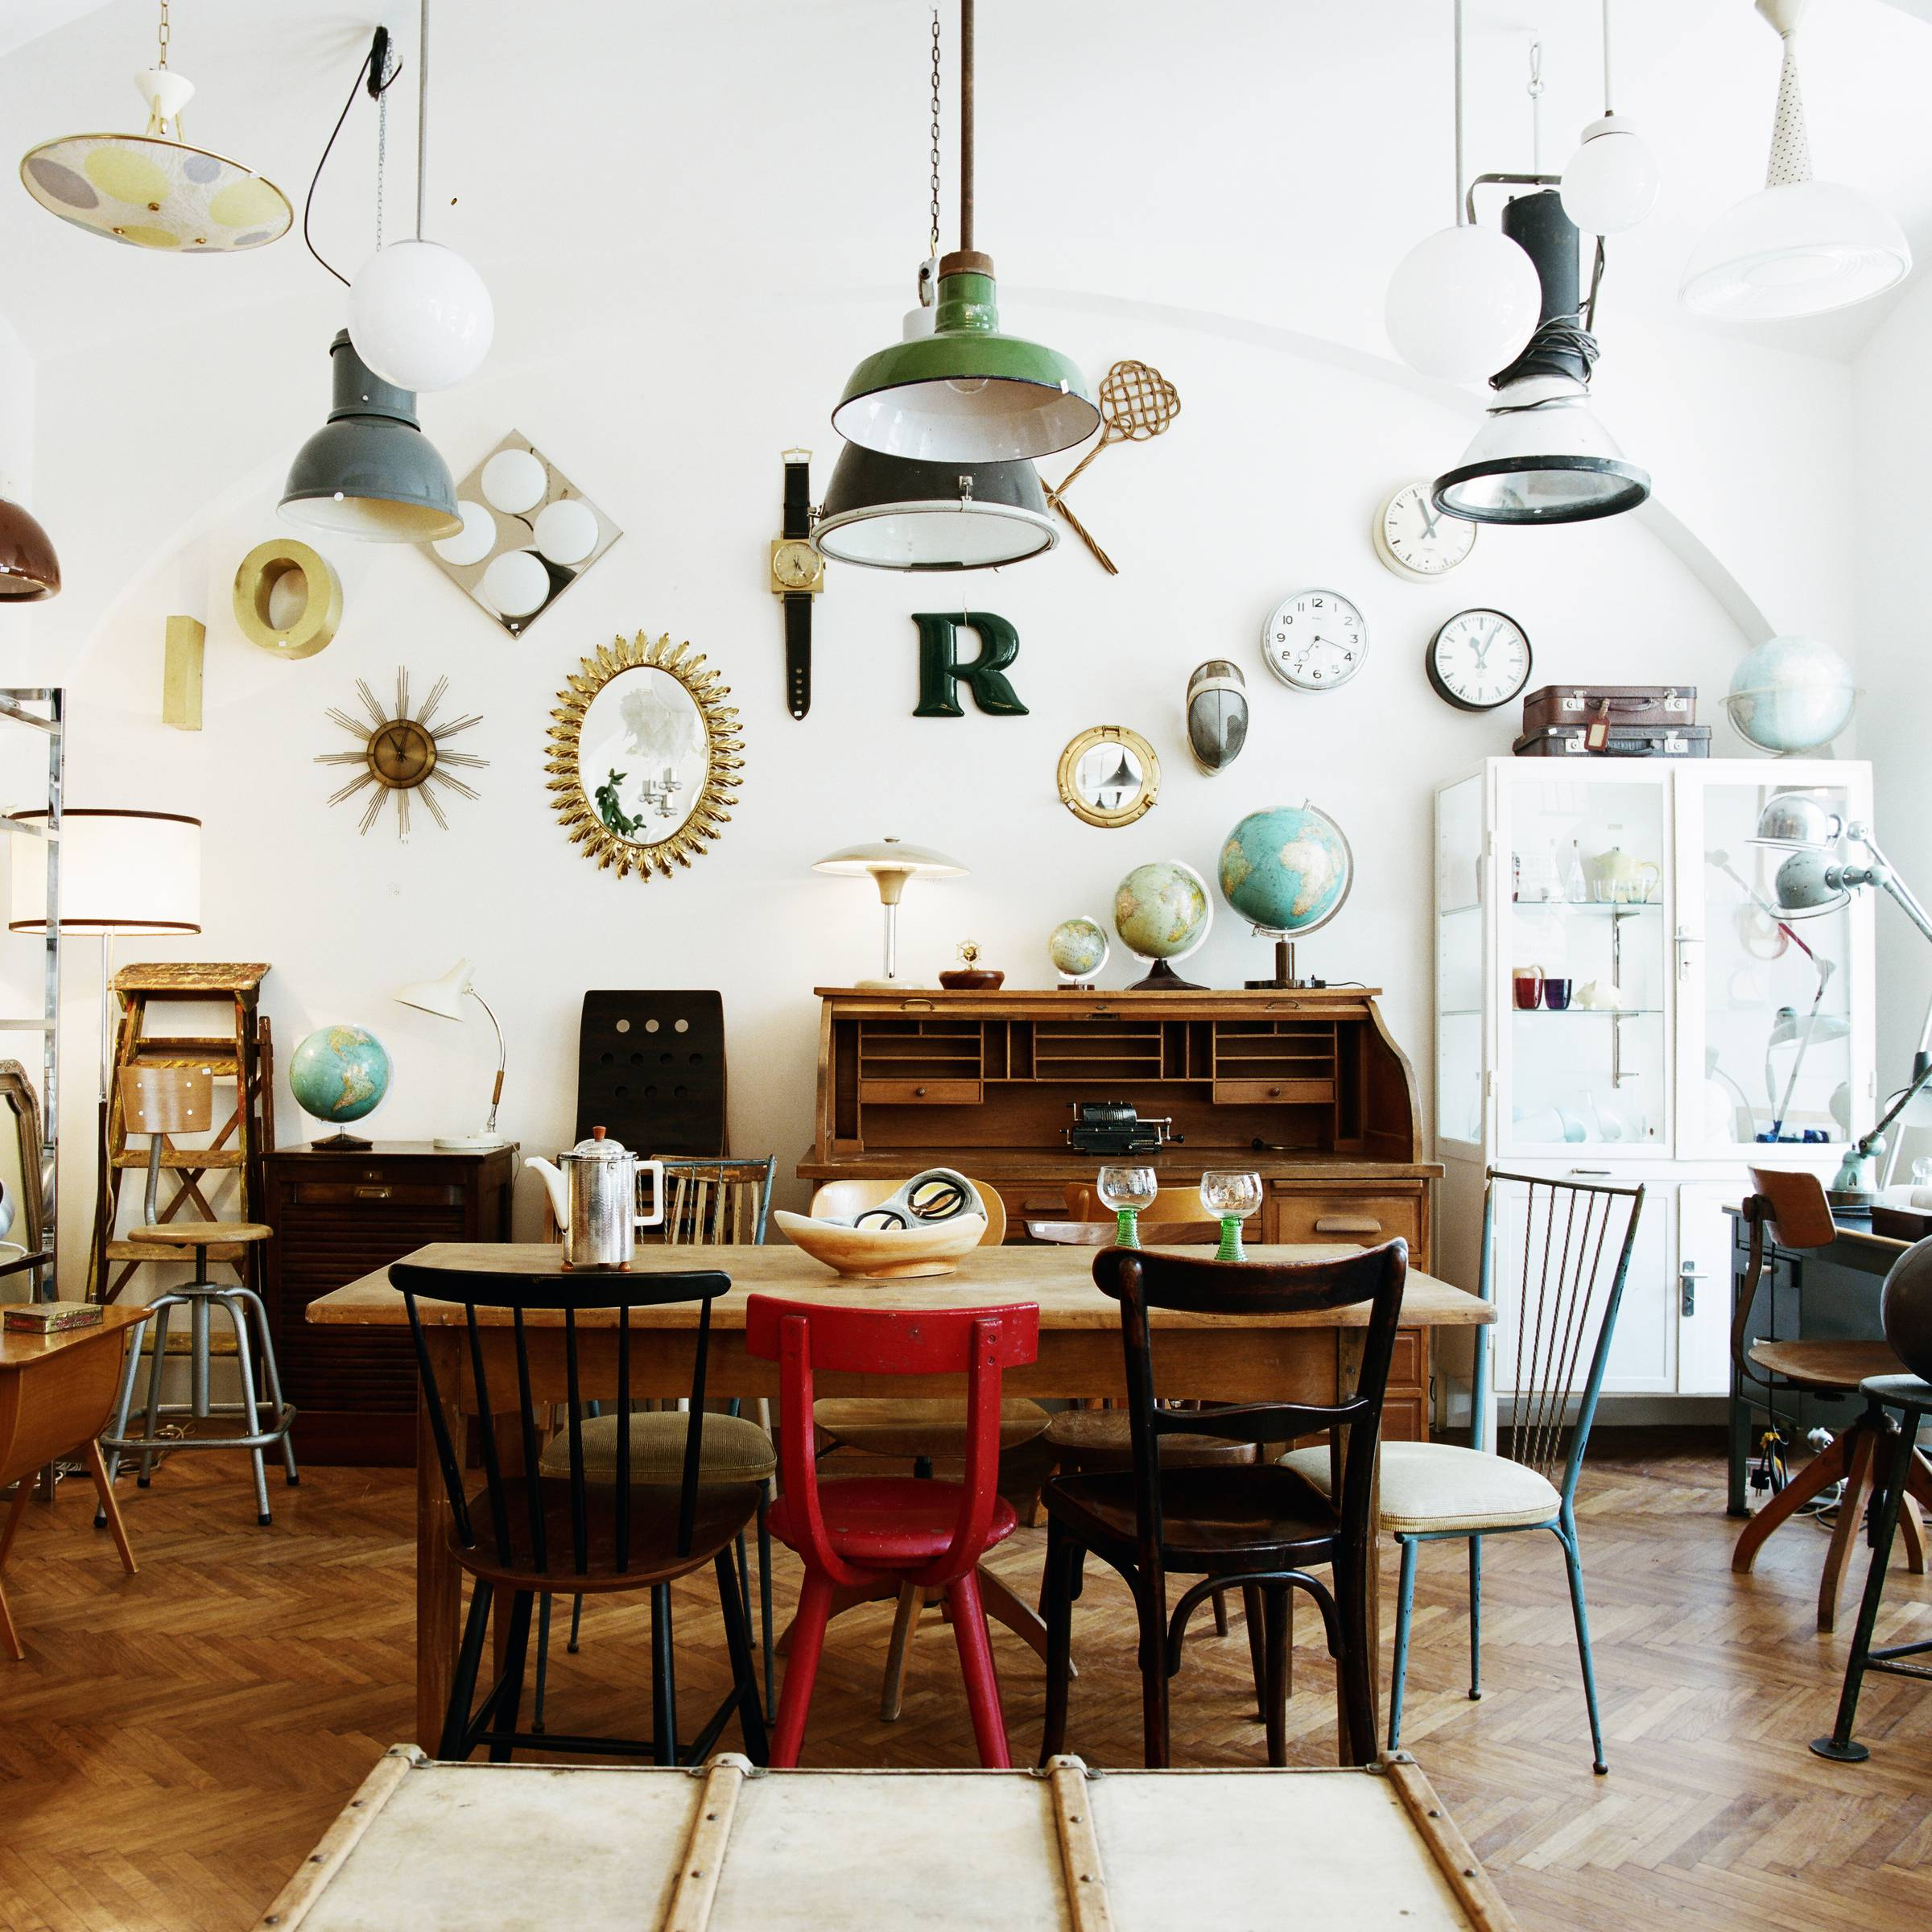 Time To Pack Your Bags And Visit The Best Lighting Stores In Vienna 10 Lighting Stores In Vienna Time To Pack Your Bags And Visit The Best Lighting Stores In Vienna Time To Pack Your Bags And Visit The Best Lighting Stores In Vienna 10